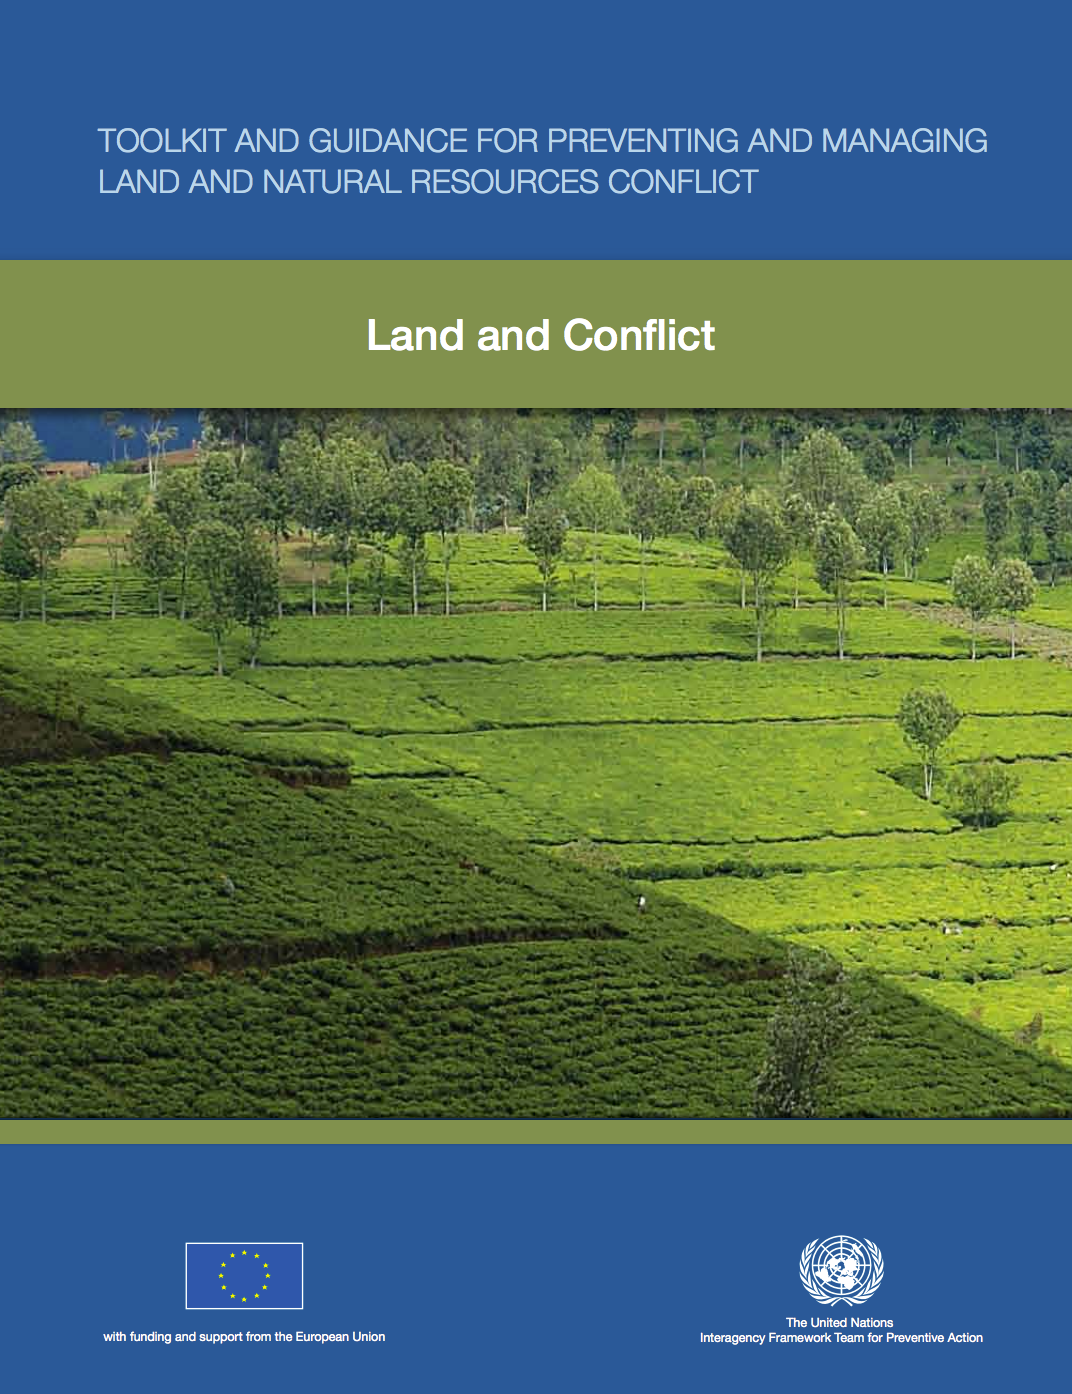 Toolkit and Guidance for Preventing and Managing Land and Natural Resources Conflict cover image